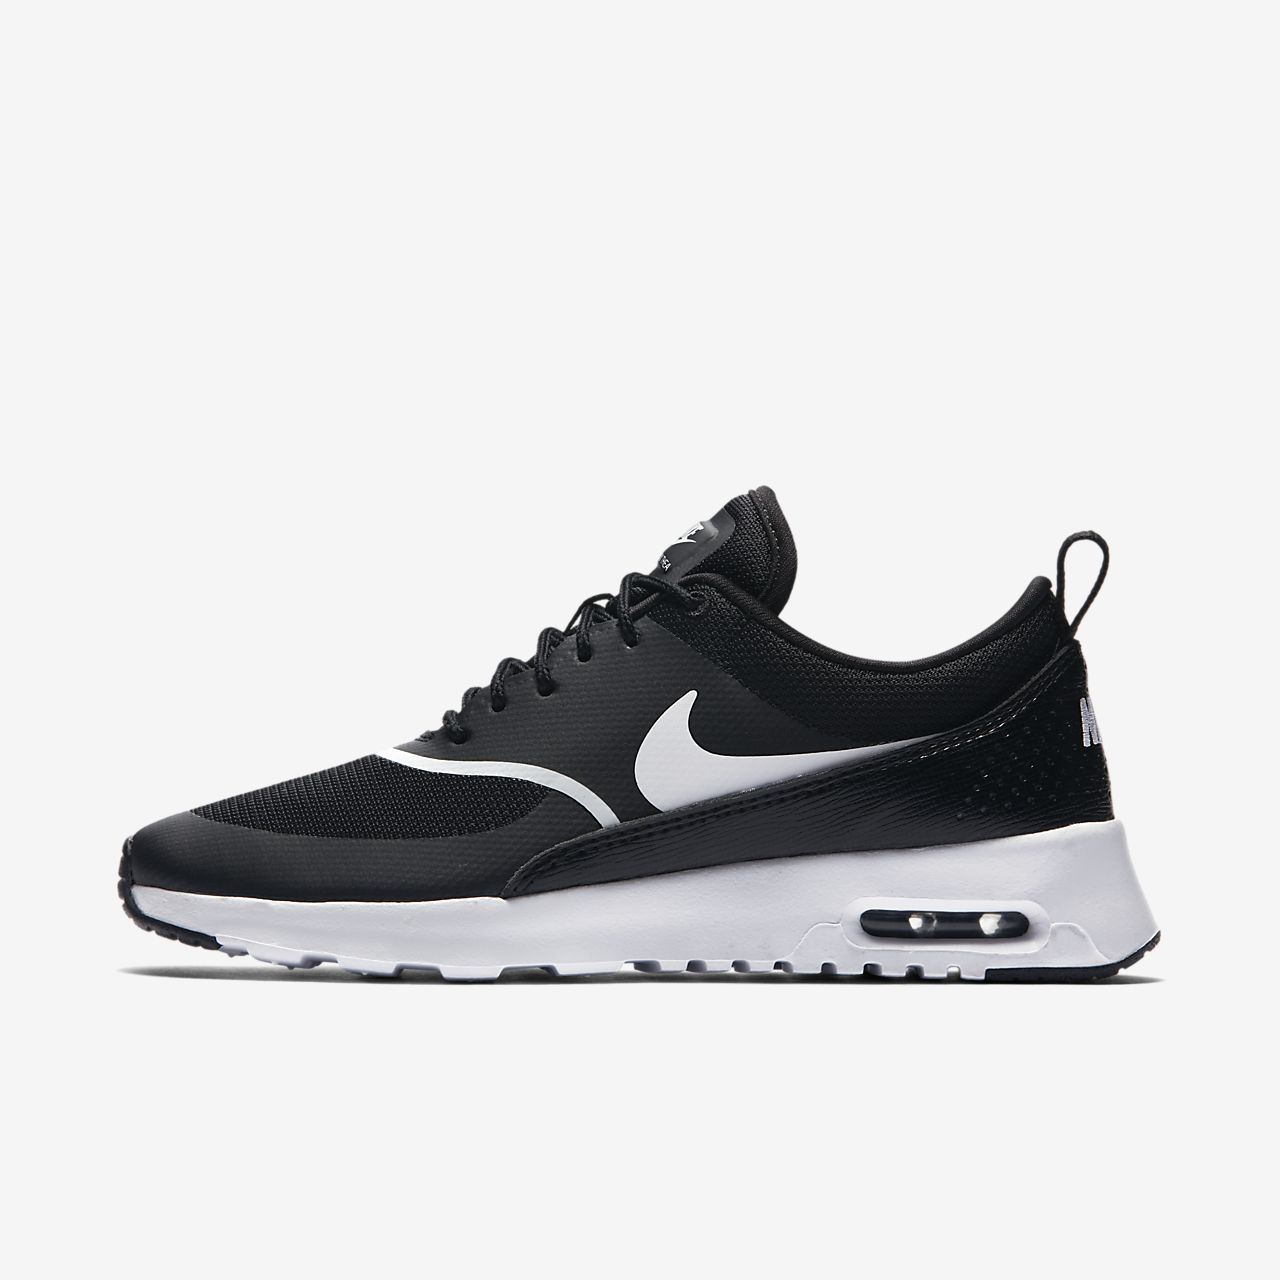 sneakers for cheap 86332 e11da ... Nike Air Max Thea Zapatillas - Mujer